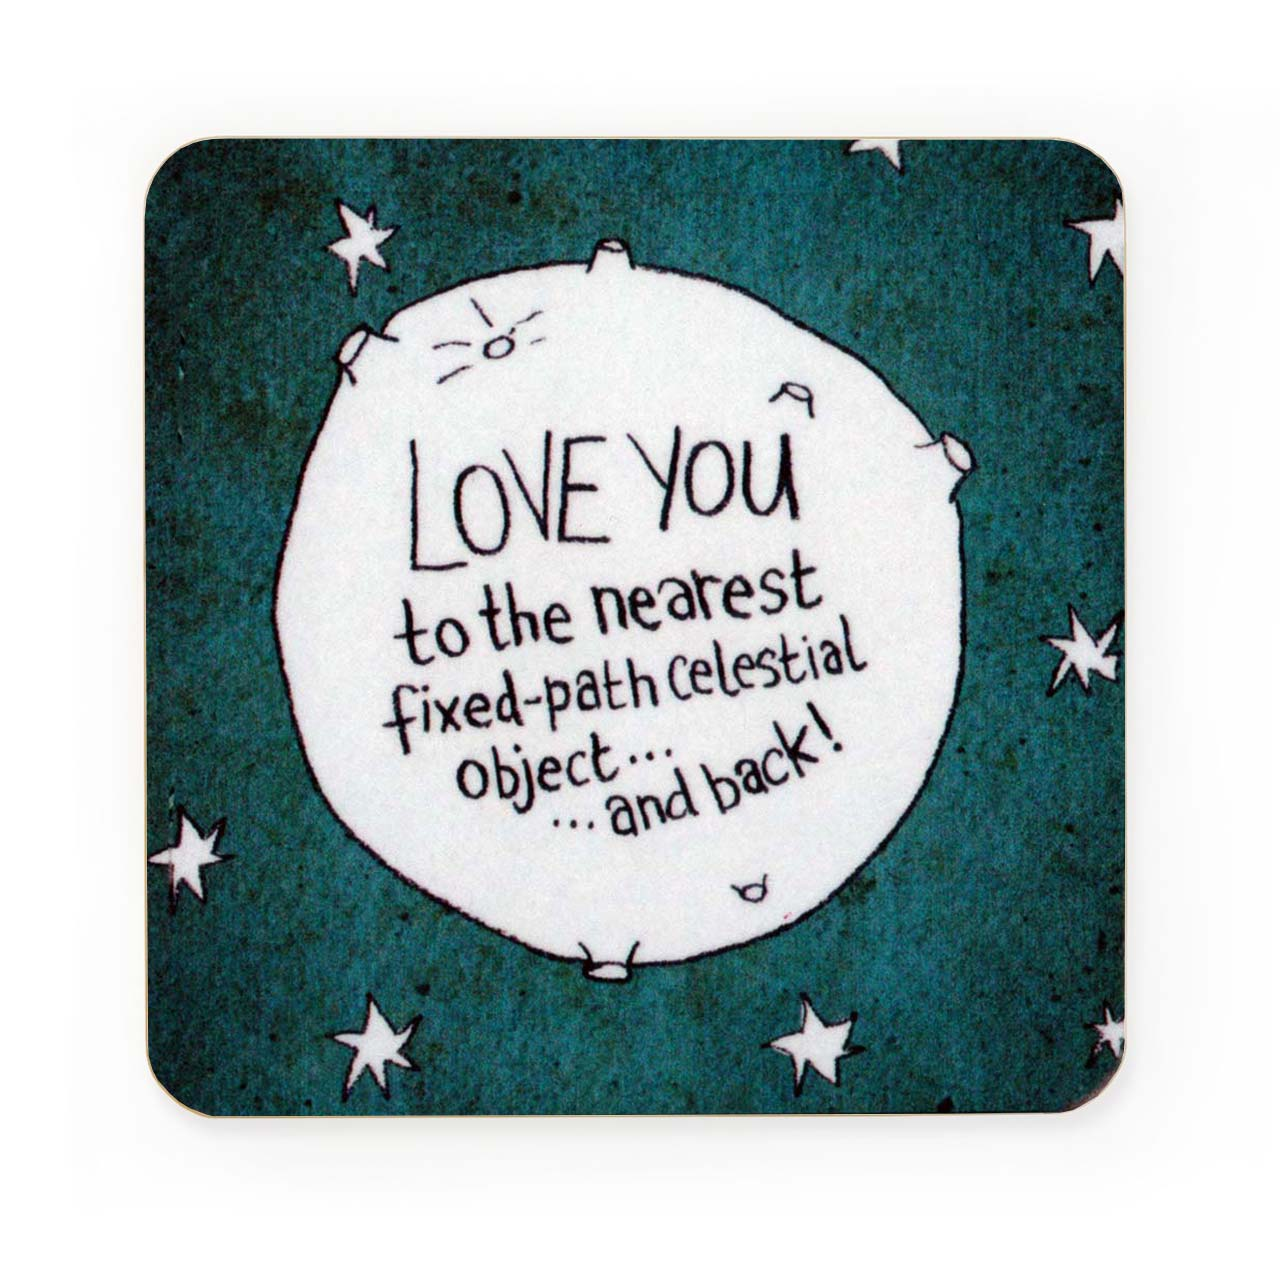 Love You To The Nearest.... Drinks Coaster